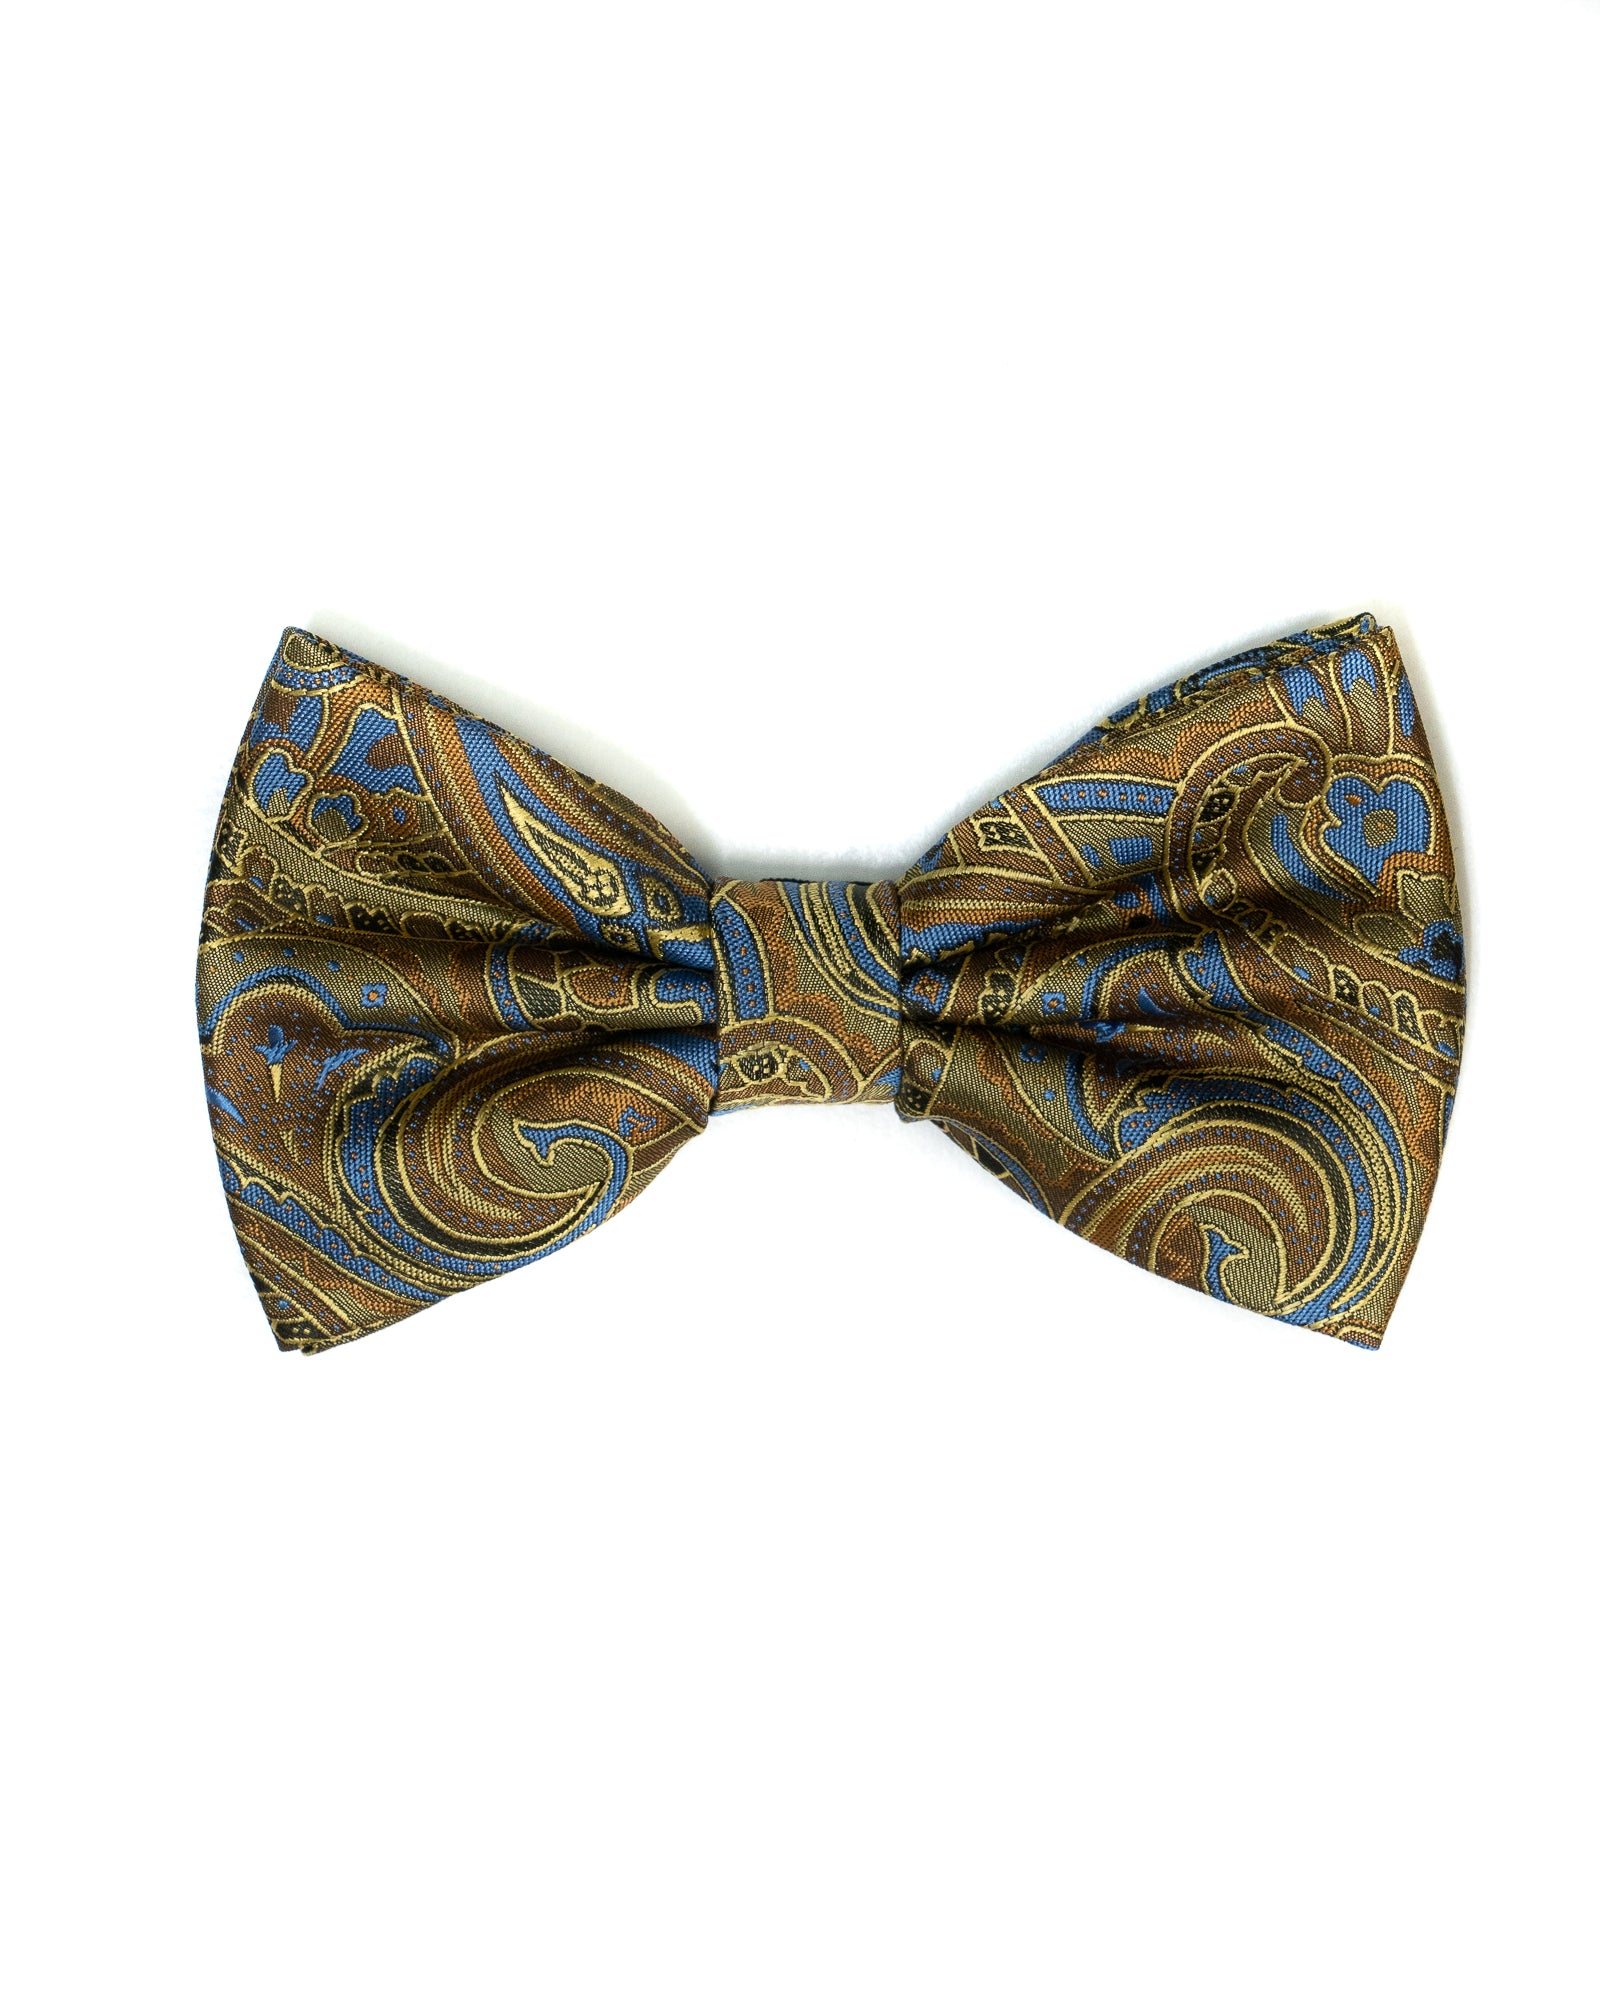 Bow Tie Paisley In Gold & Blue - Rainwater's Men's Clothing and Tuxedo Rental